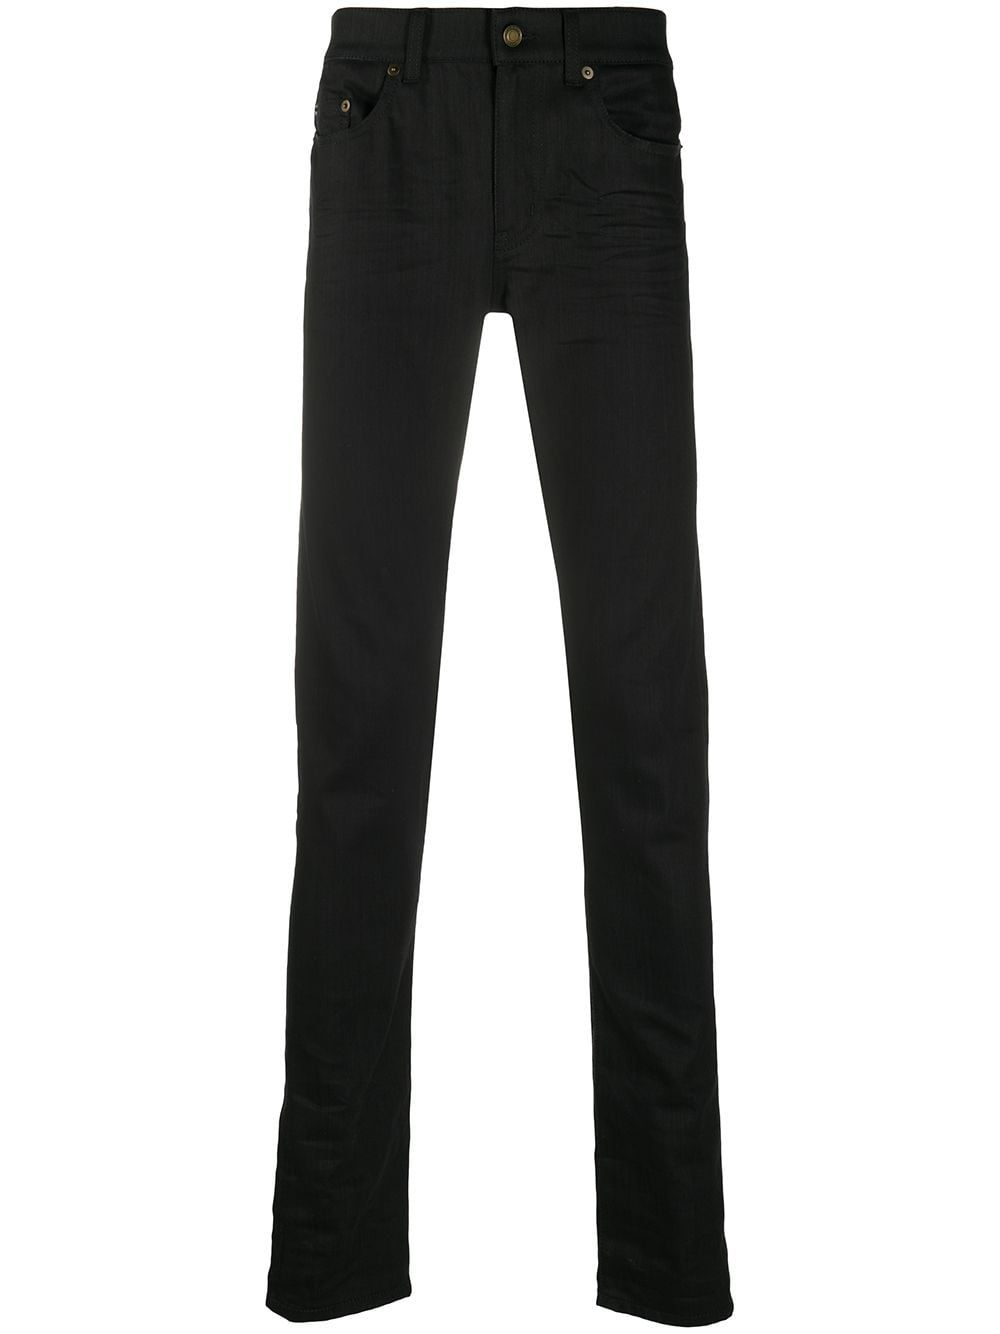 Jeans skinny fit in cotone